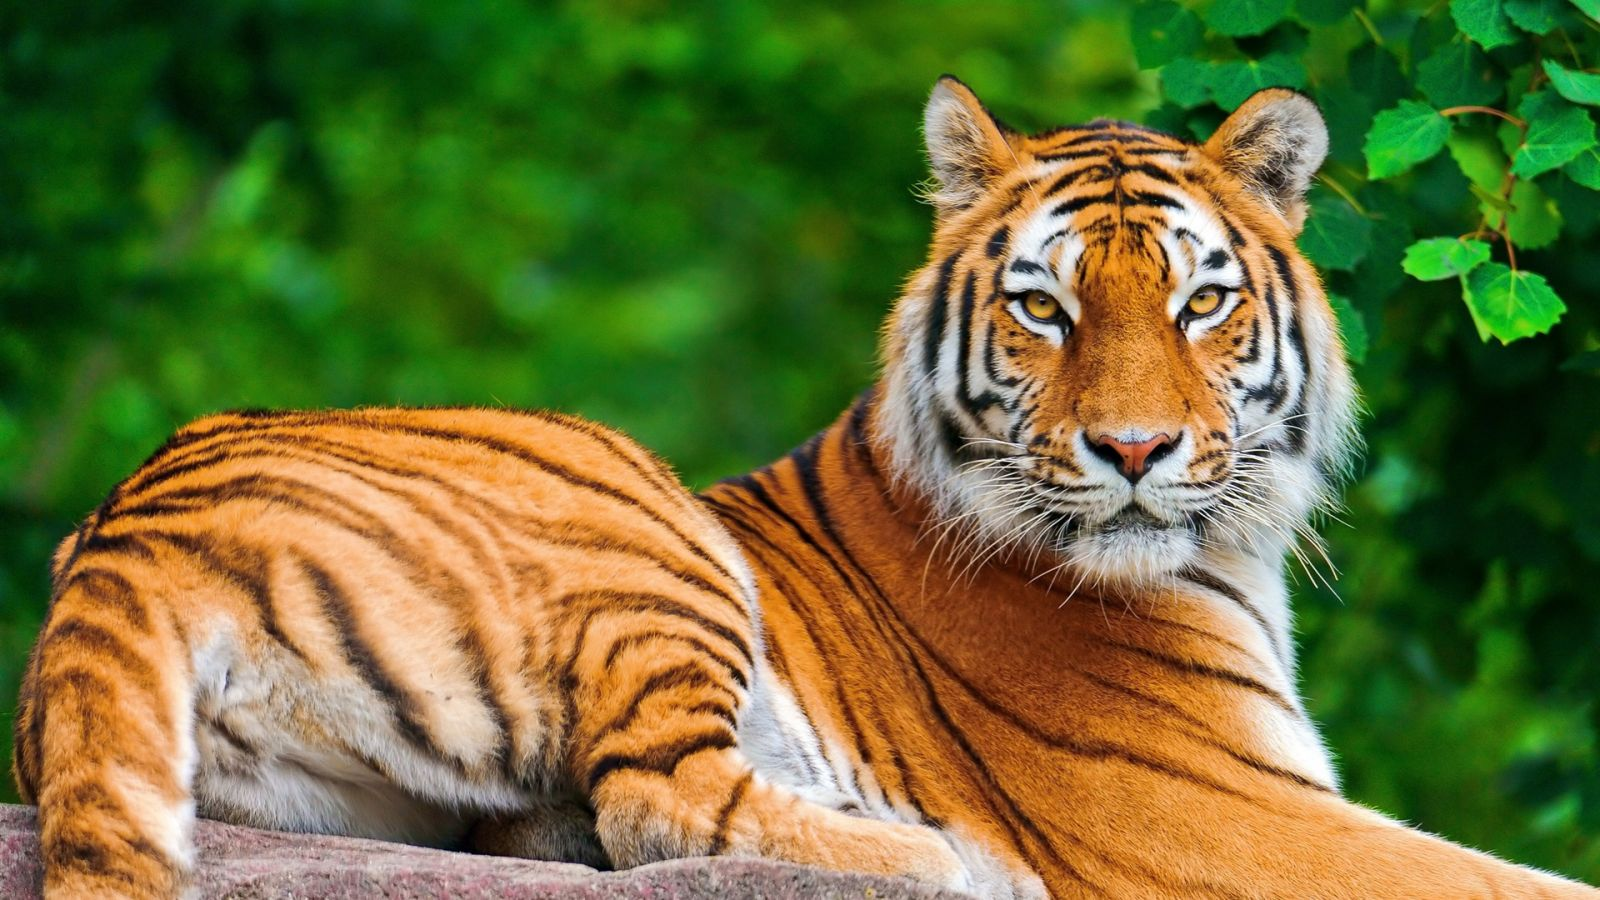 Best Animal HD Wallpaper